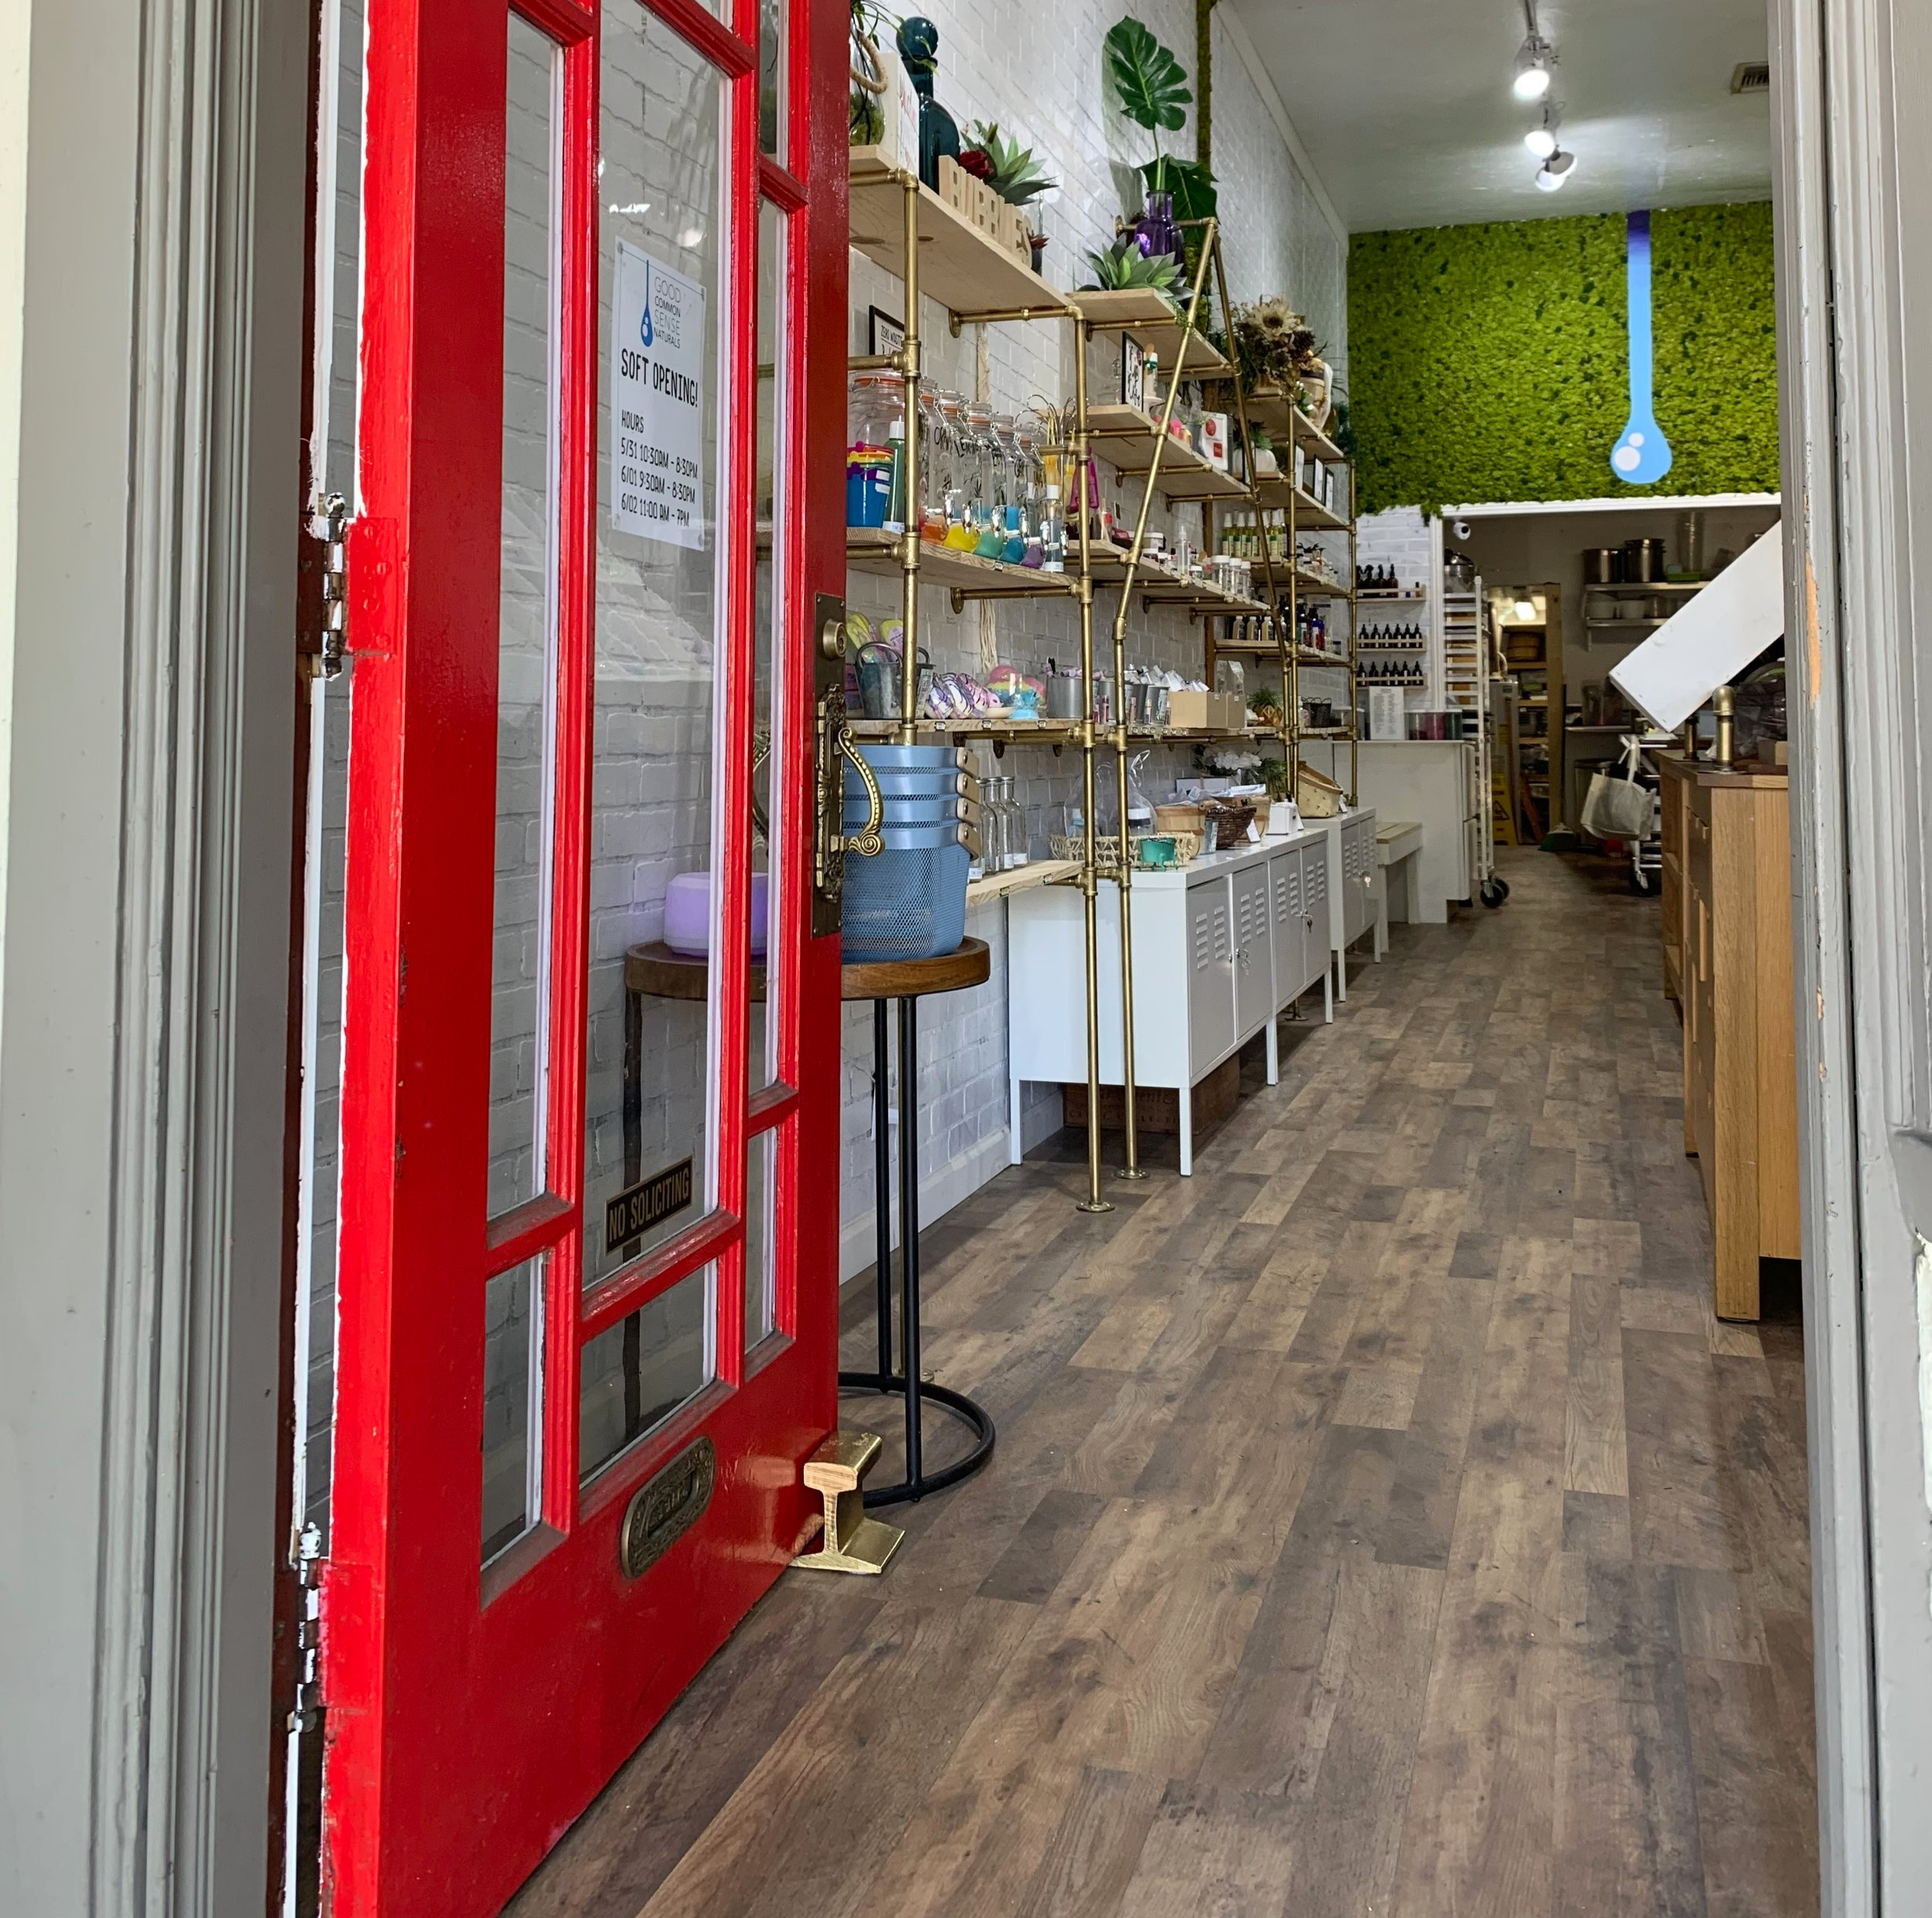 The first day Good Common Sense Naturals opened for the soft opening June 1, 2019